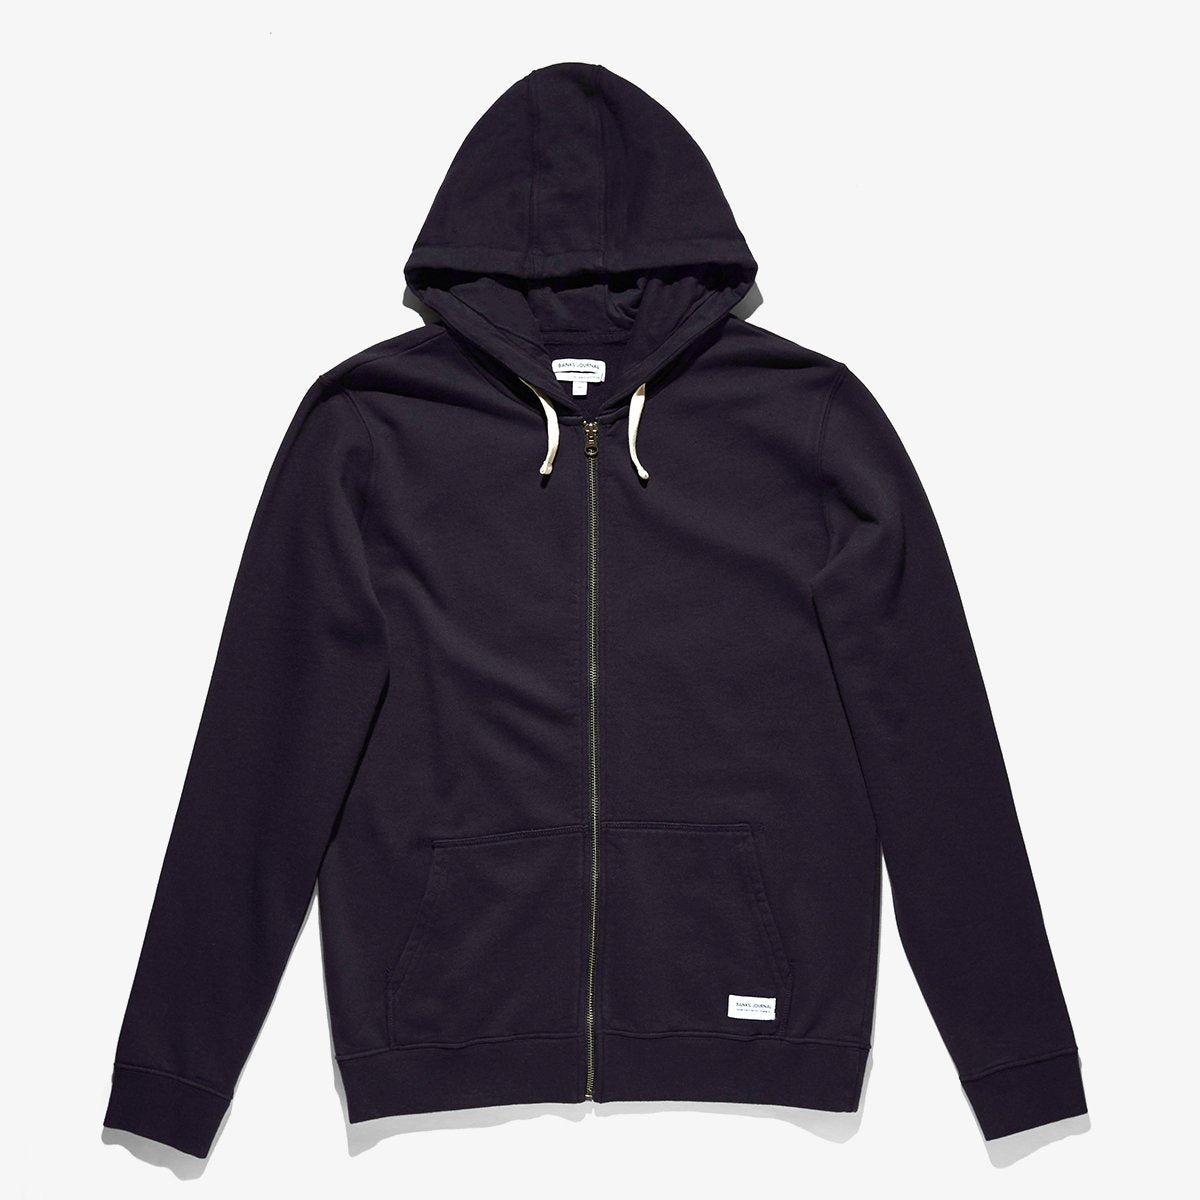 Primary Deluxe Fleece- Dirty Black